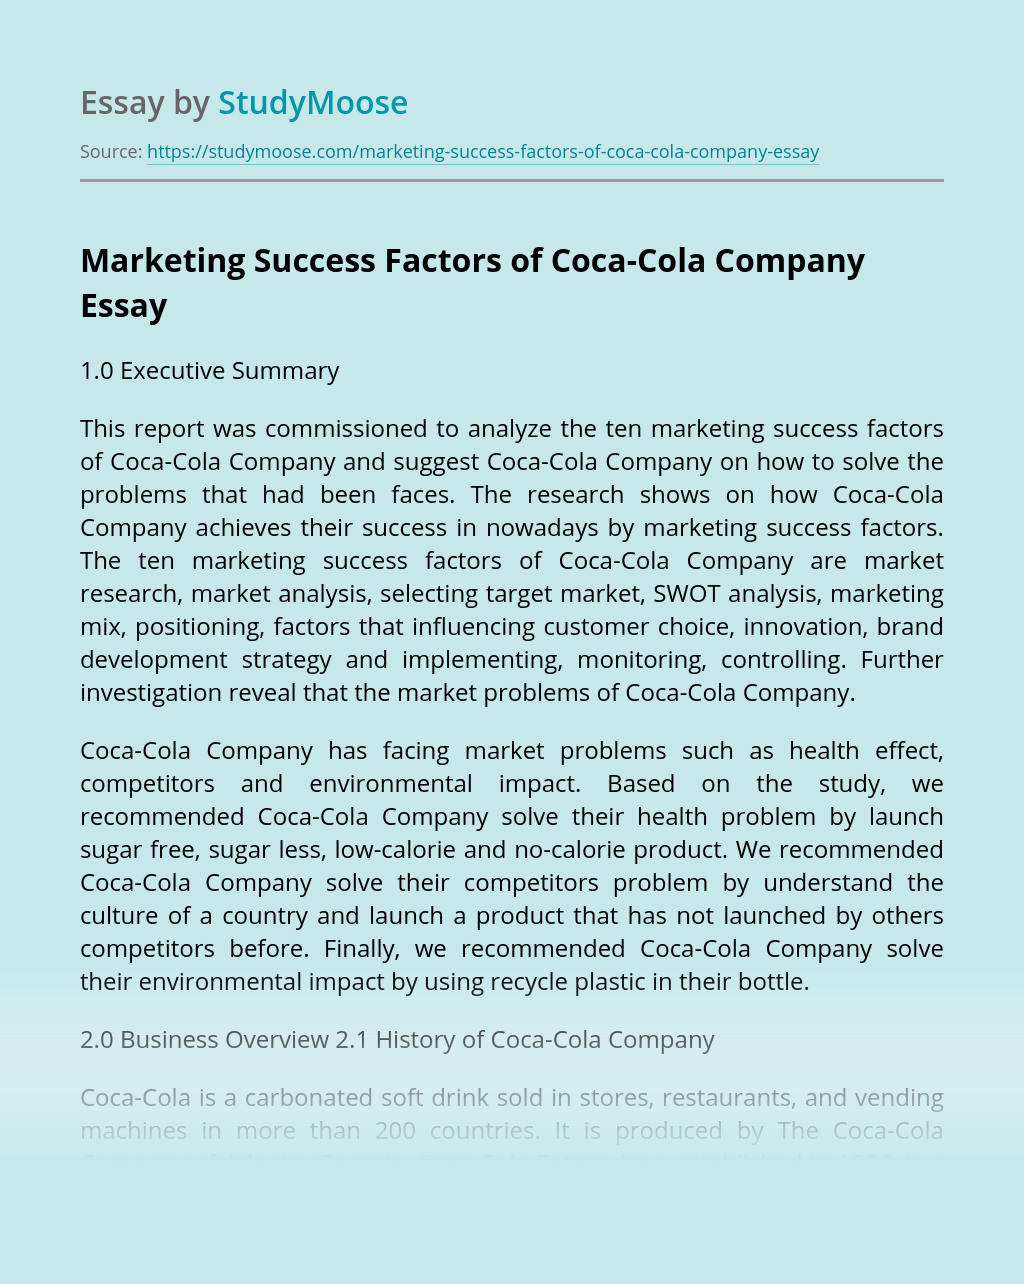 Marketing Success Factors of Coca-Cola Company